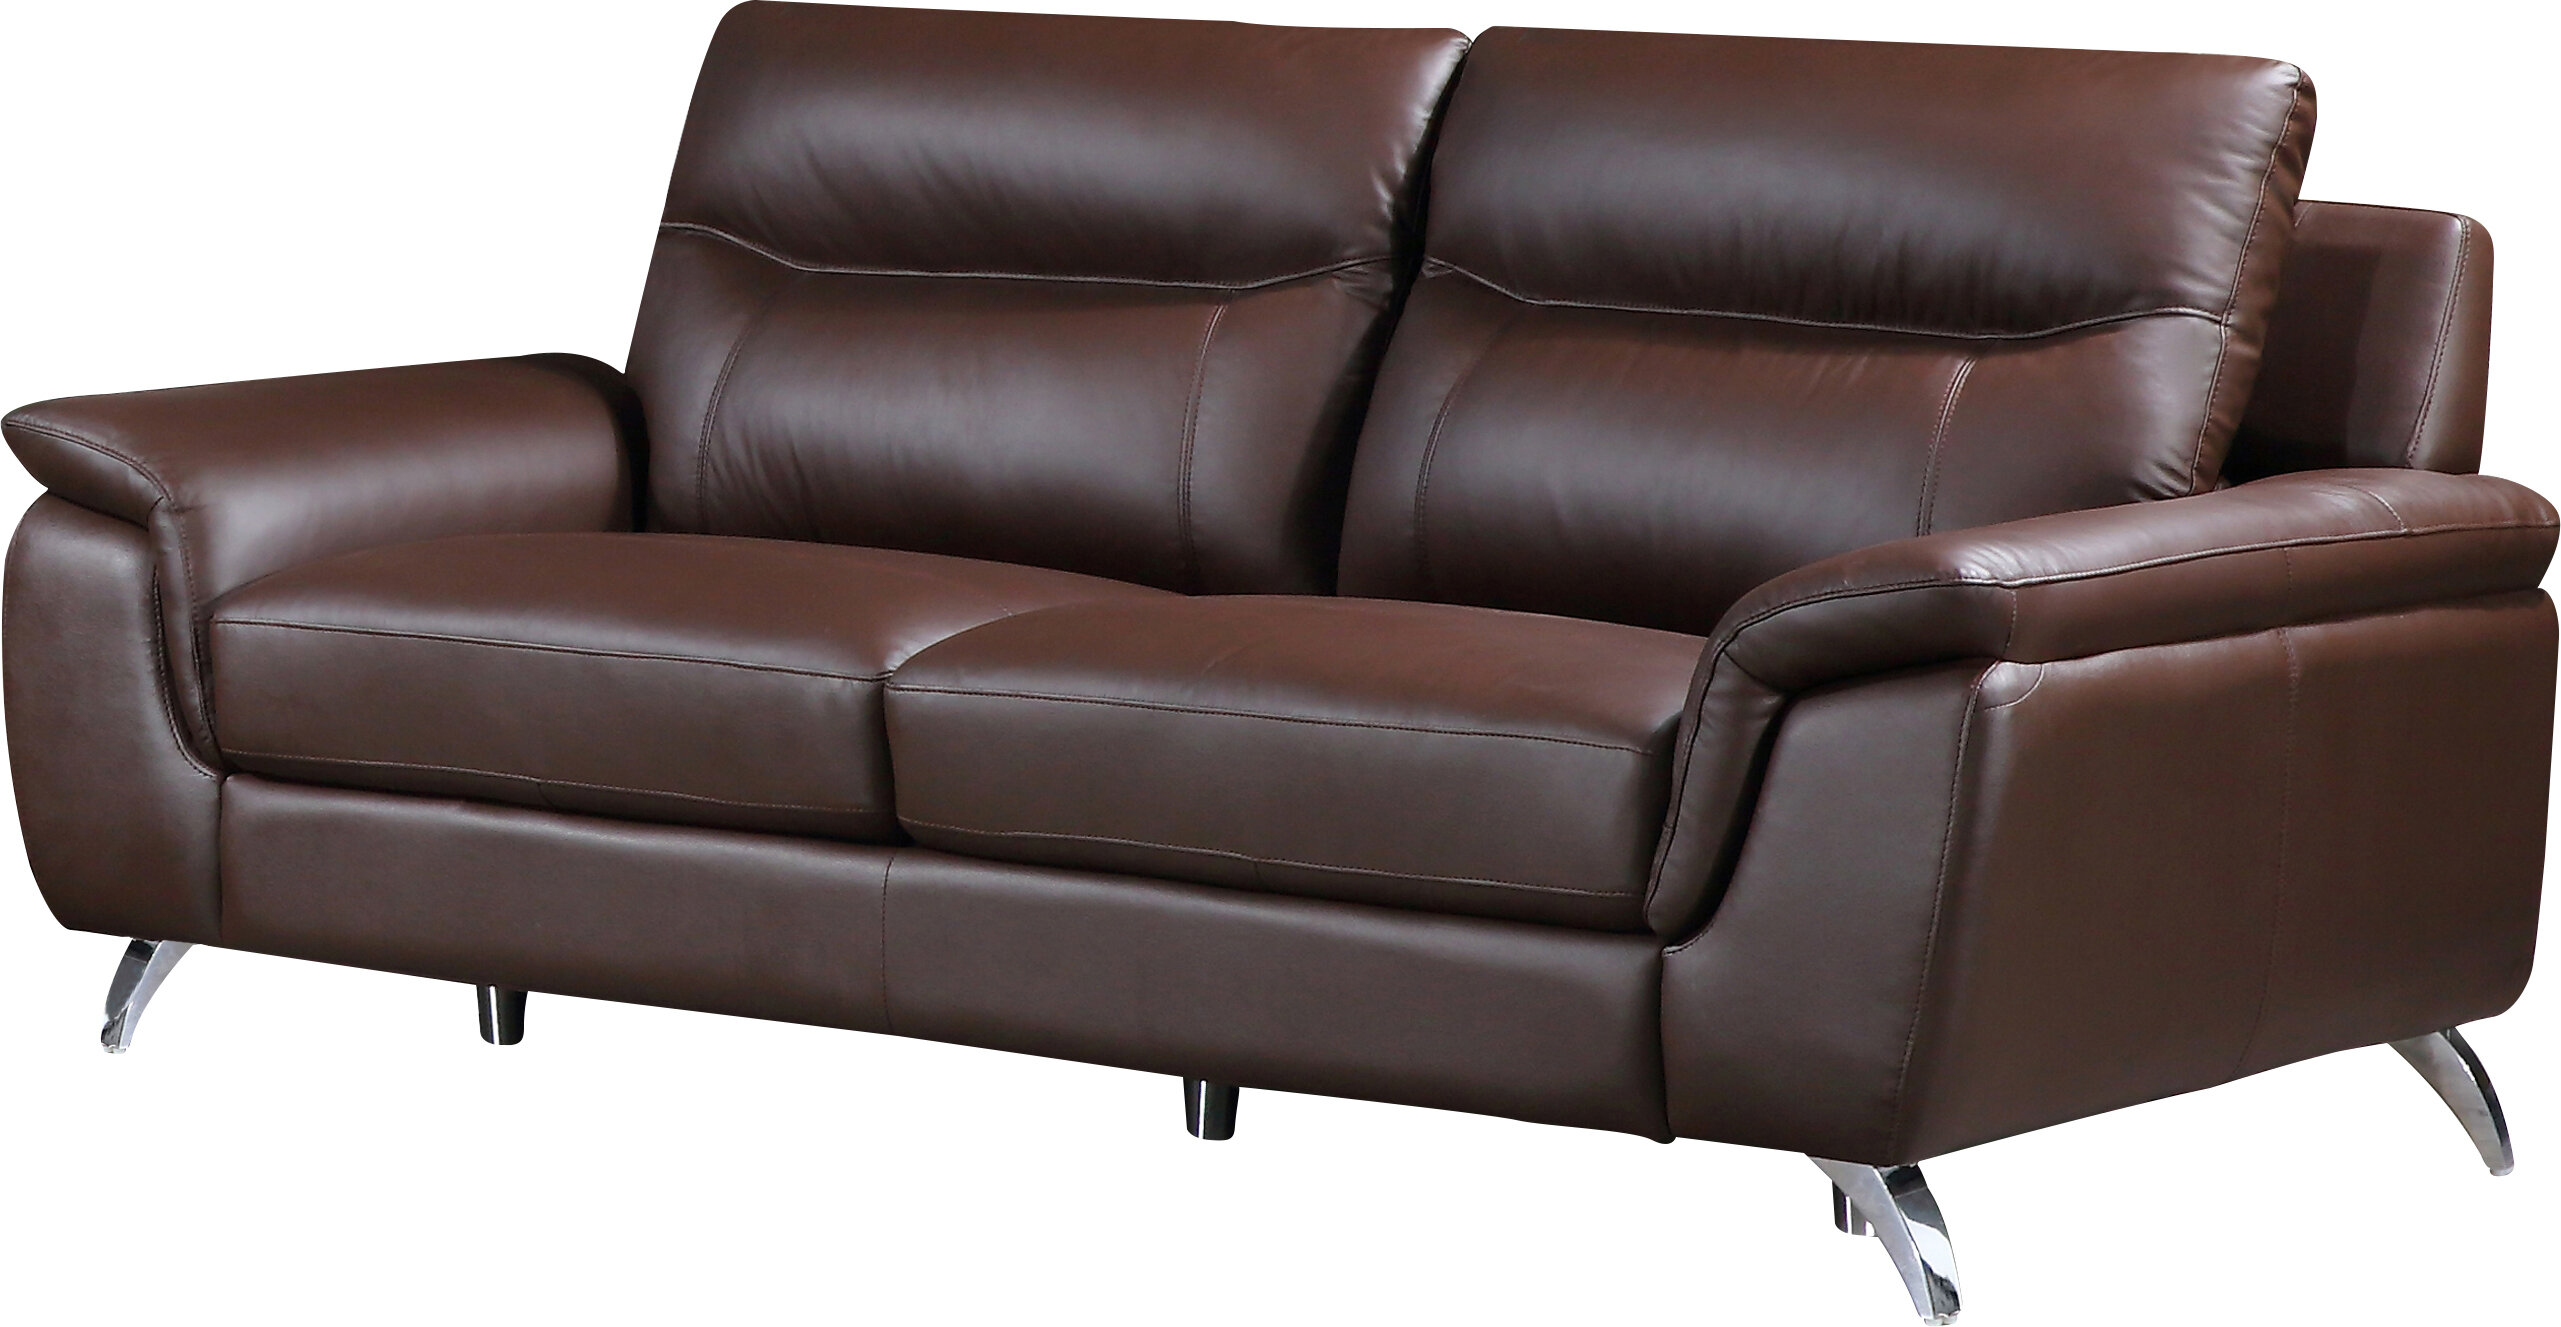 Superbe Cortesi Home Chicago Leather Sofa | Wayfair